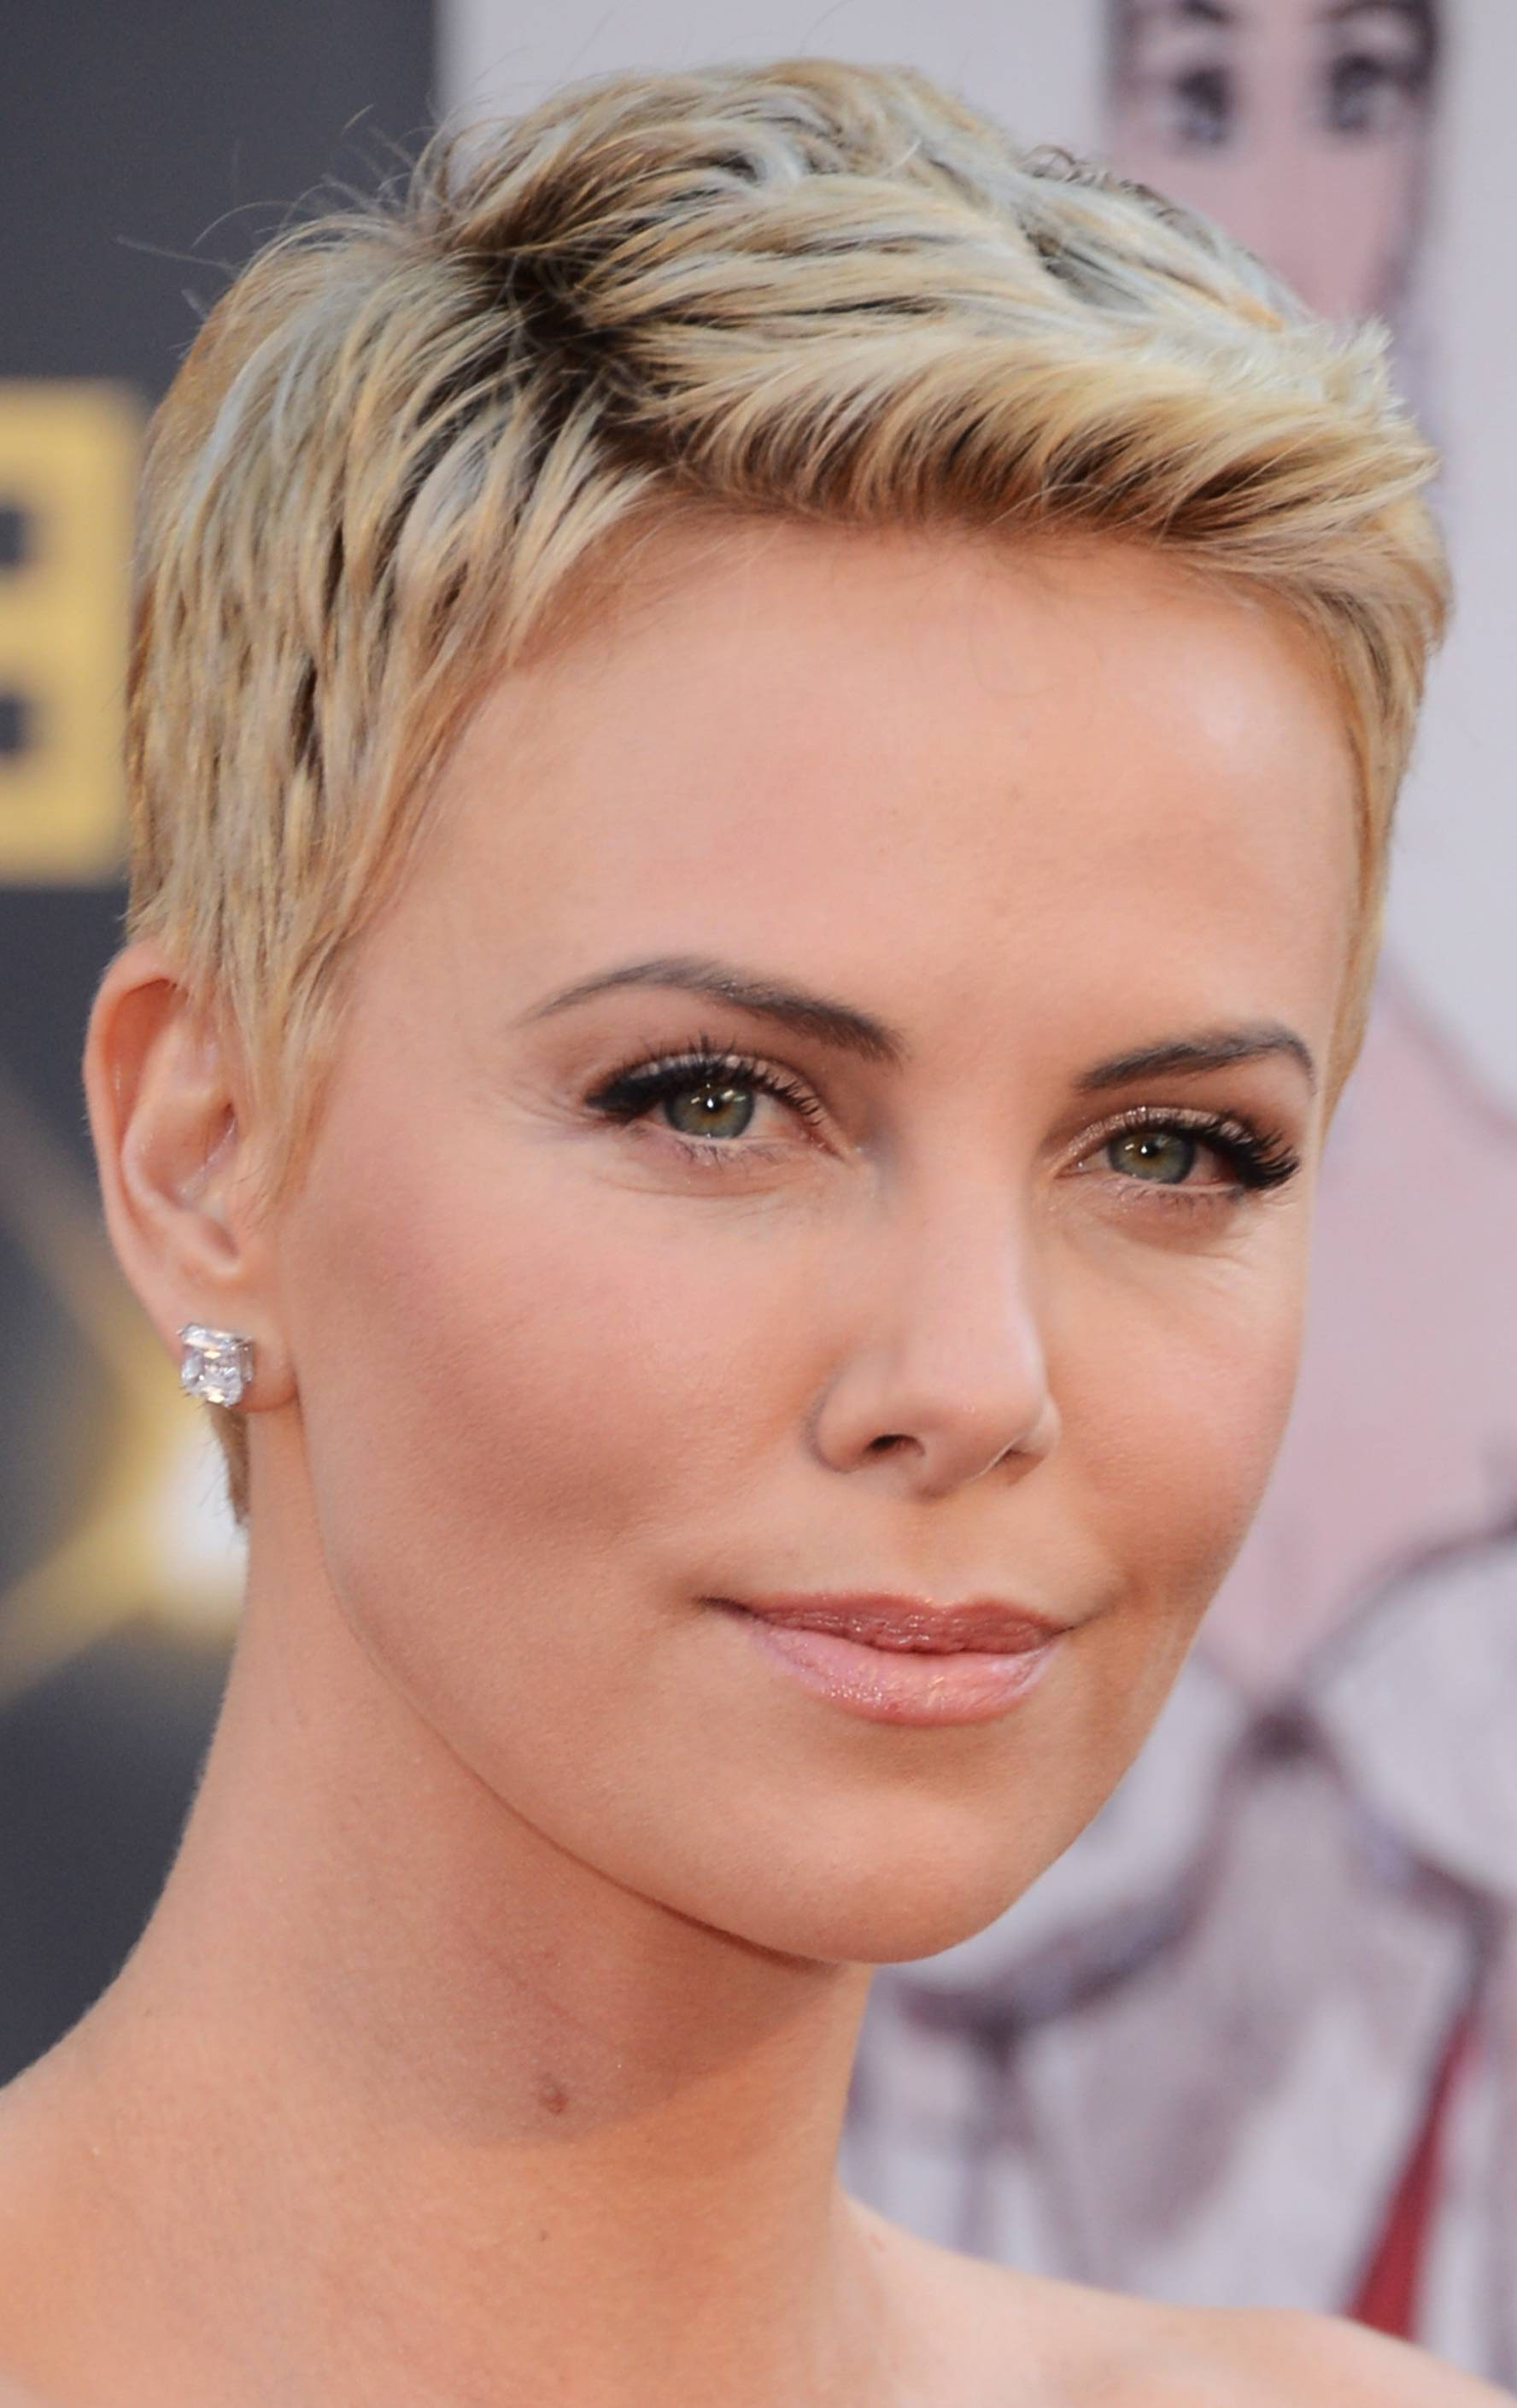 Short Hairstyles For Skinny Faces Best Of Best Medium Hairstyle For Inside Short Hairstyles For Small Faces (View 23 of 25)